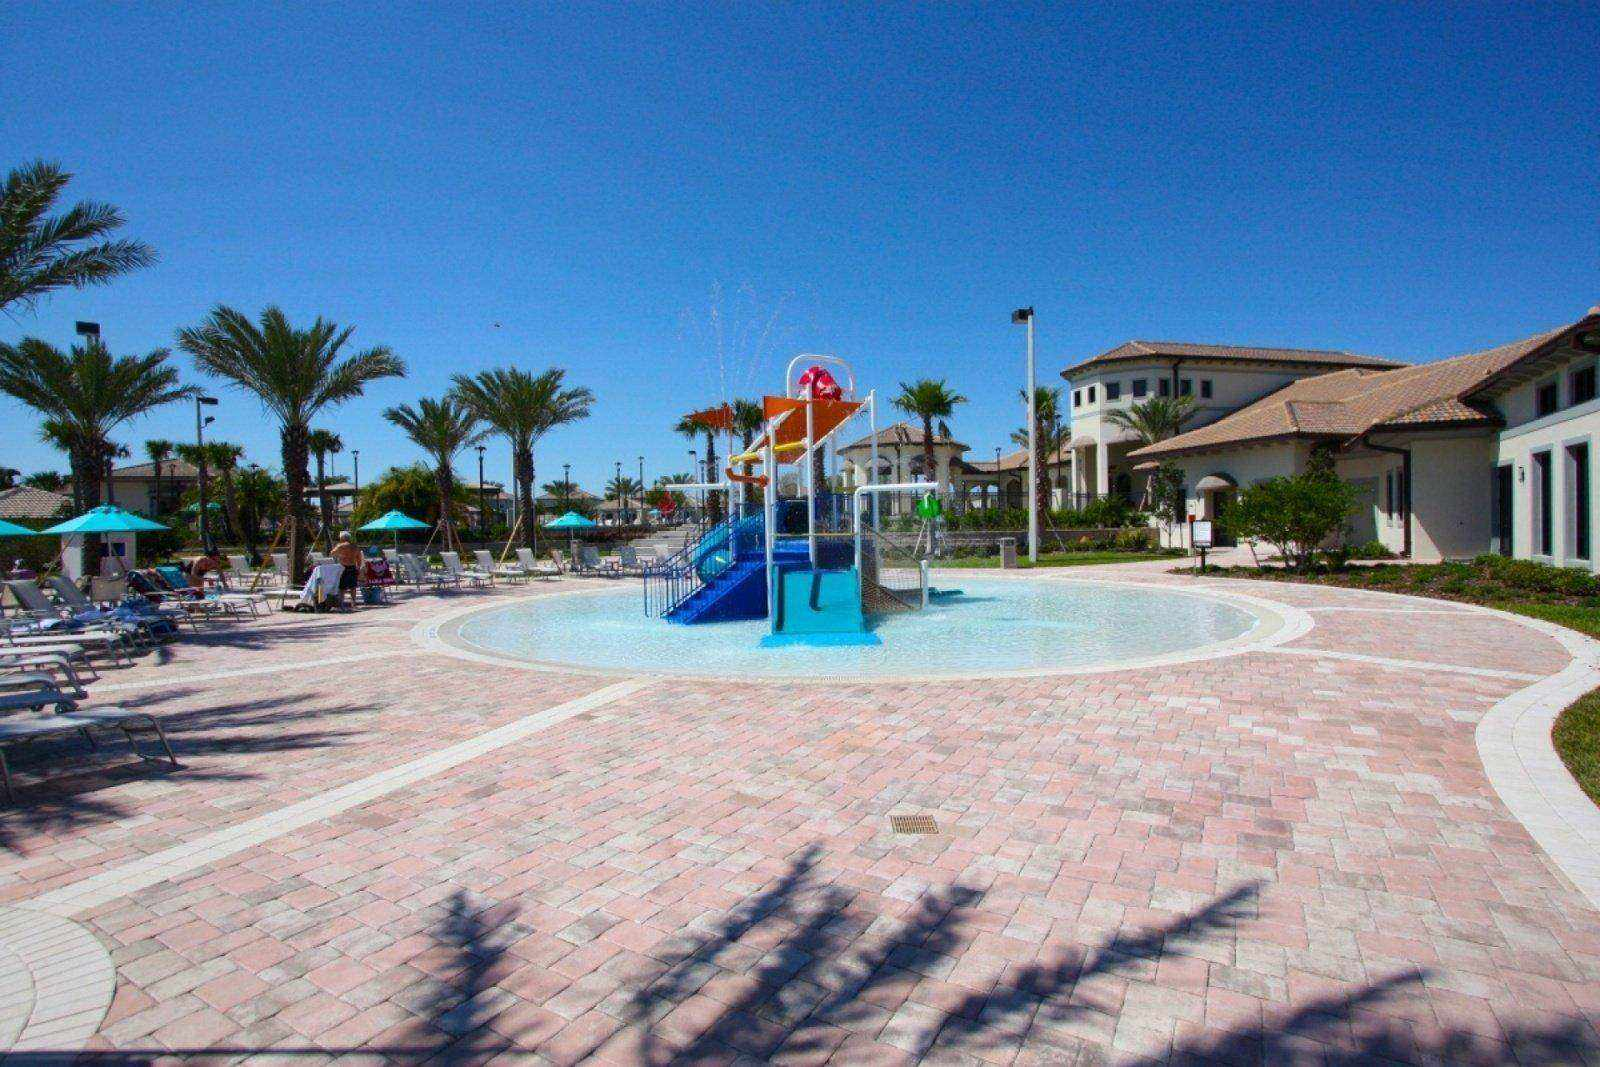 Champions Gate Resort/DR4090-26